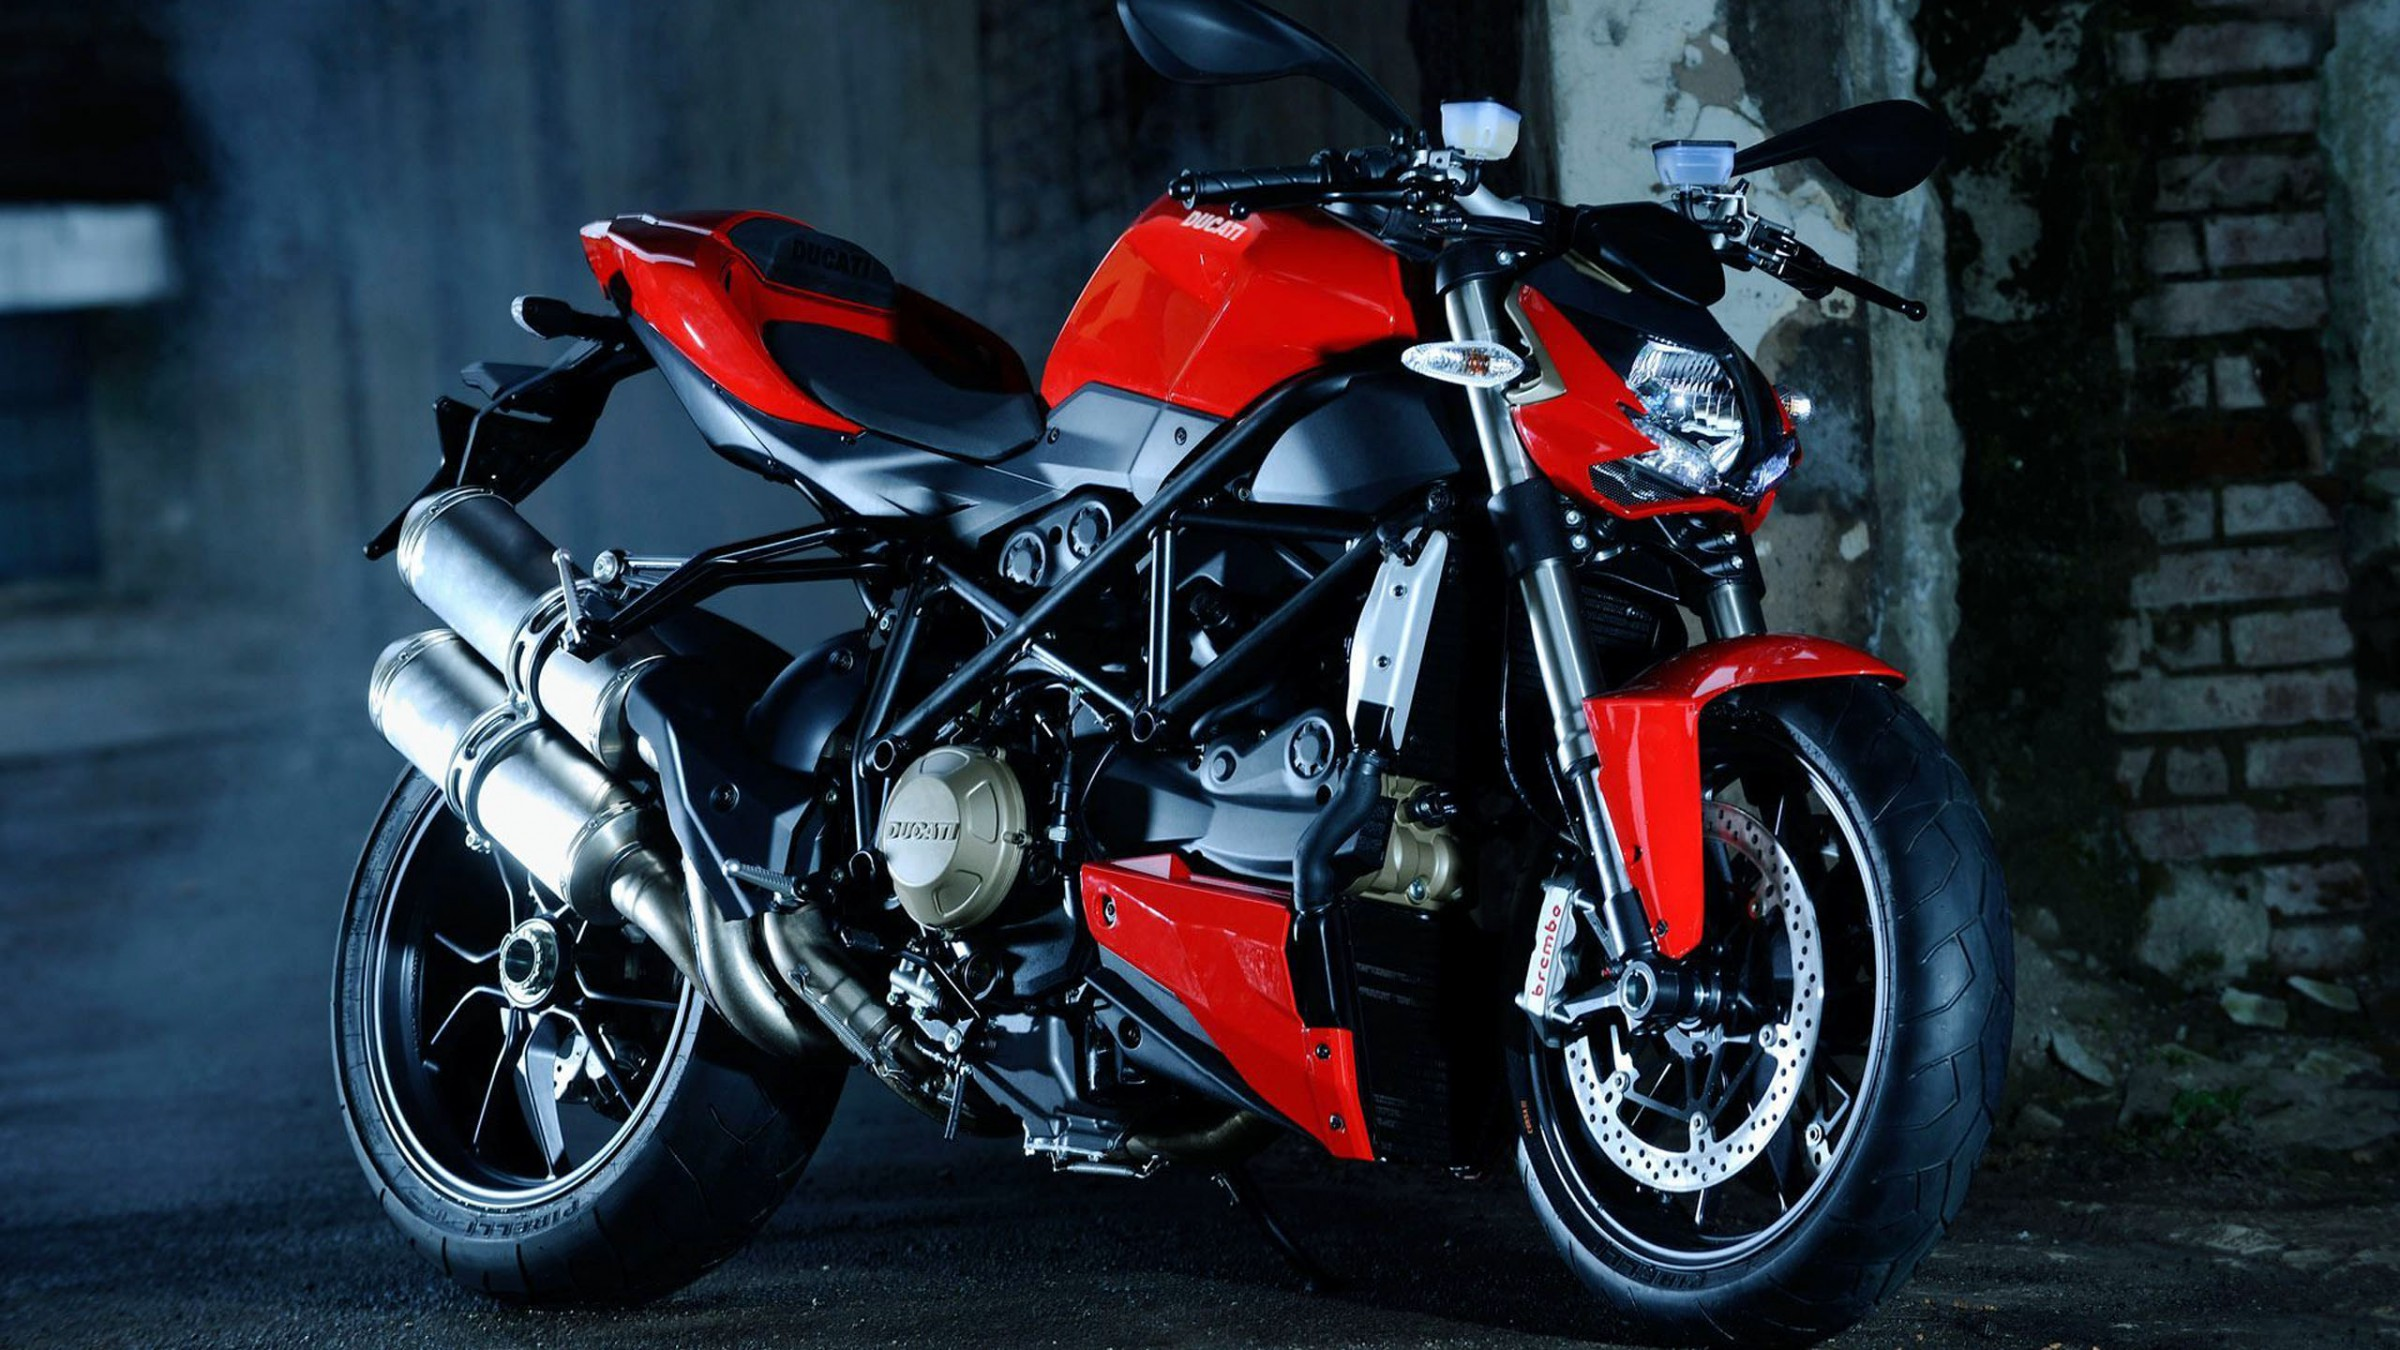 Ducati Streetfighter Full HD Wallpaper And Background Image